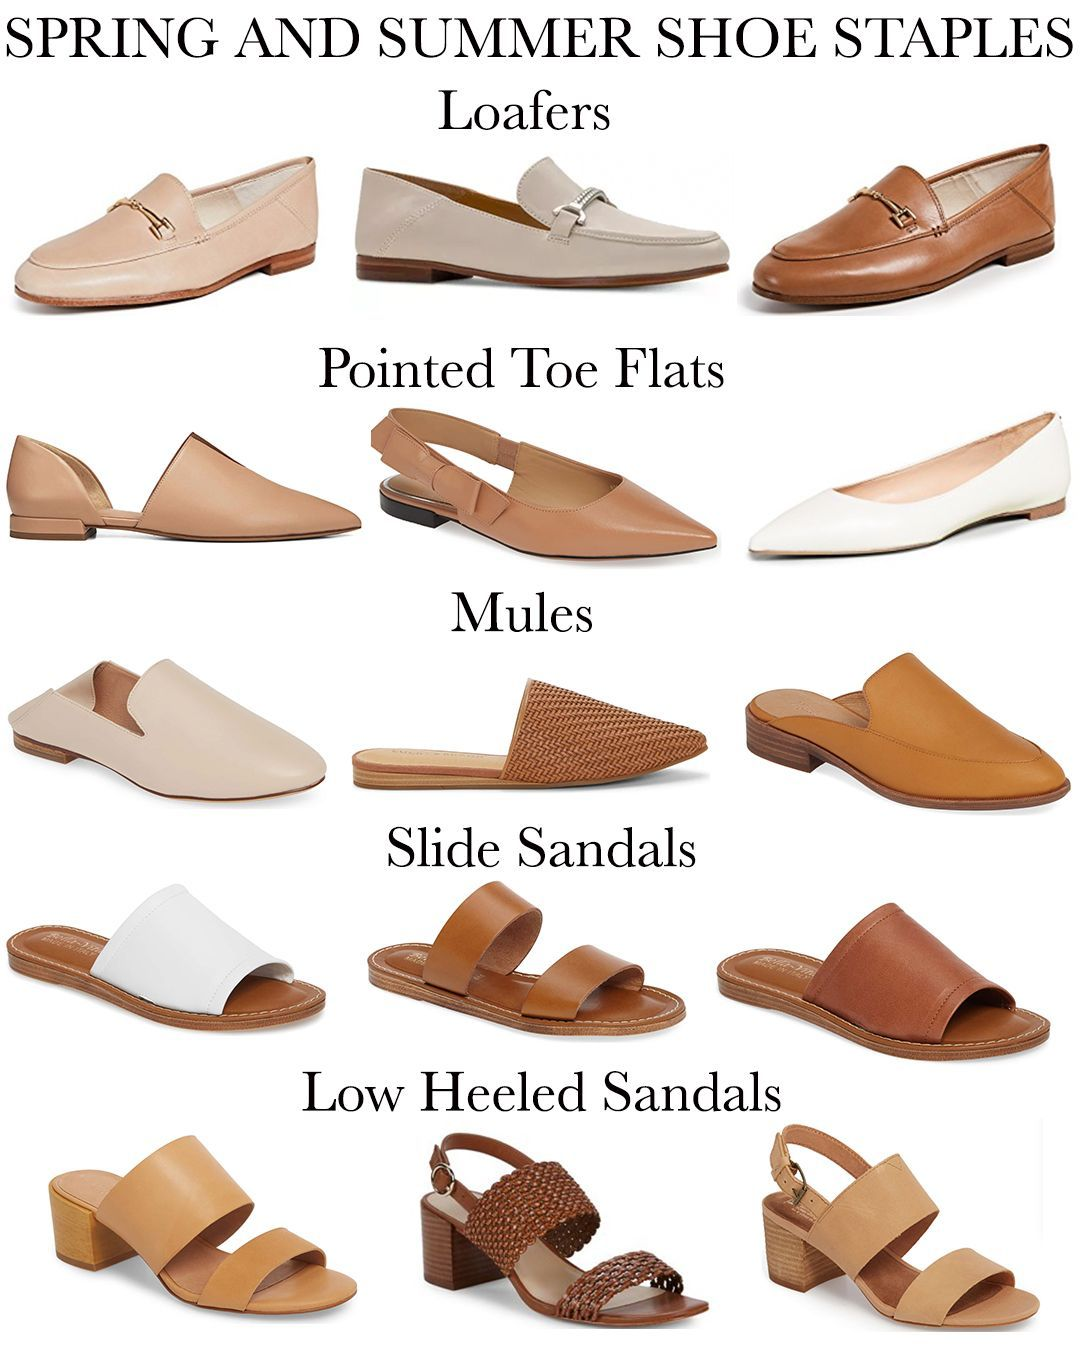 save off 2018 sneakers usa cheap sale Spring and Summer Shoe Staples — Girl Meets Gold | summer shoes ...